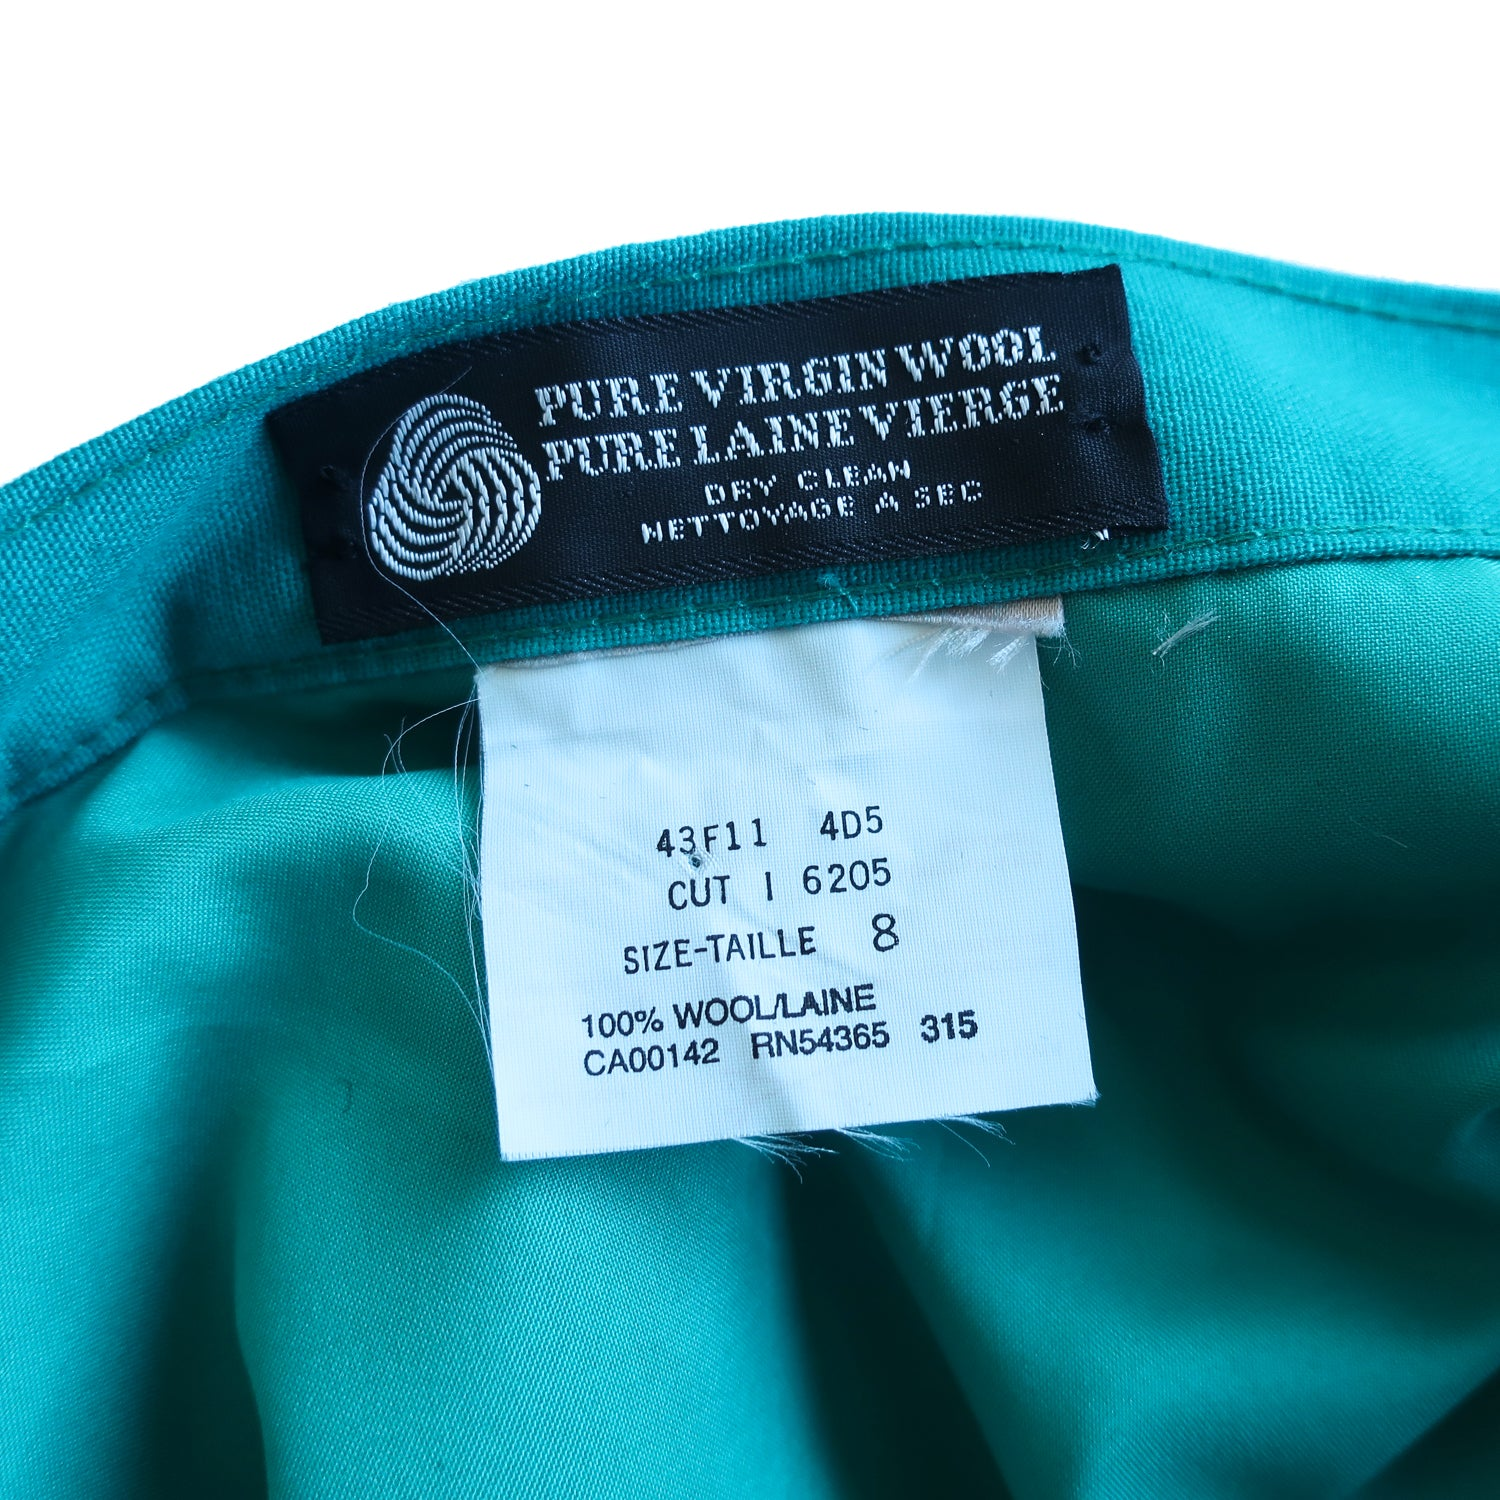 Second Room Vintage Clothing. Vintage bright turquoise blue/green fully lined and pleated wool midi skirt, with side zipper and button closure; dry clean only. Free North American shipping on all orders.